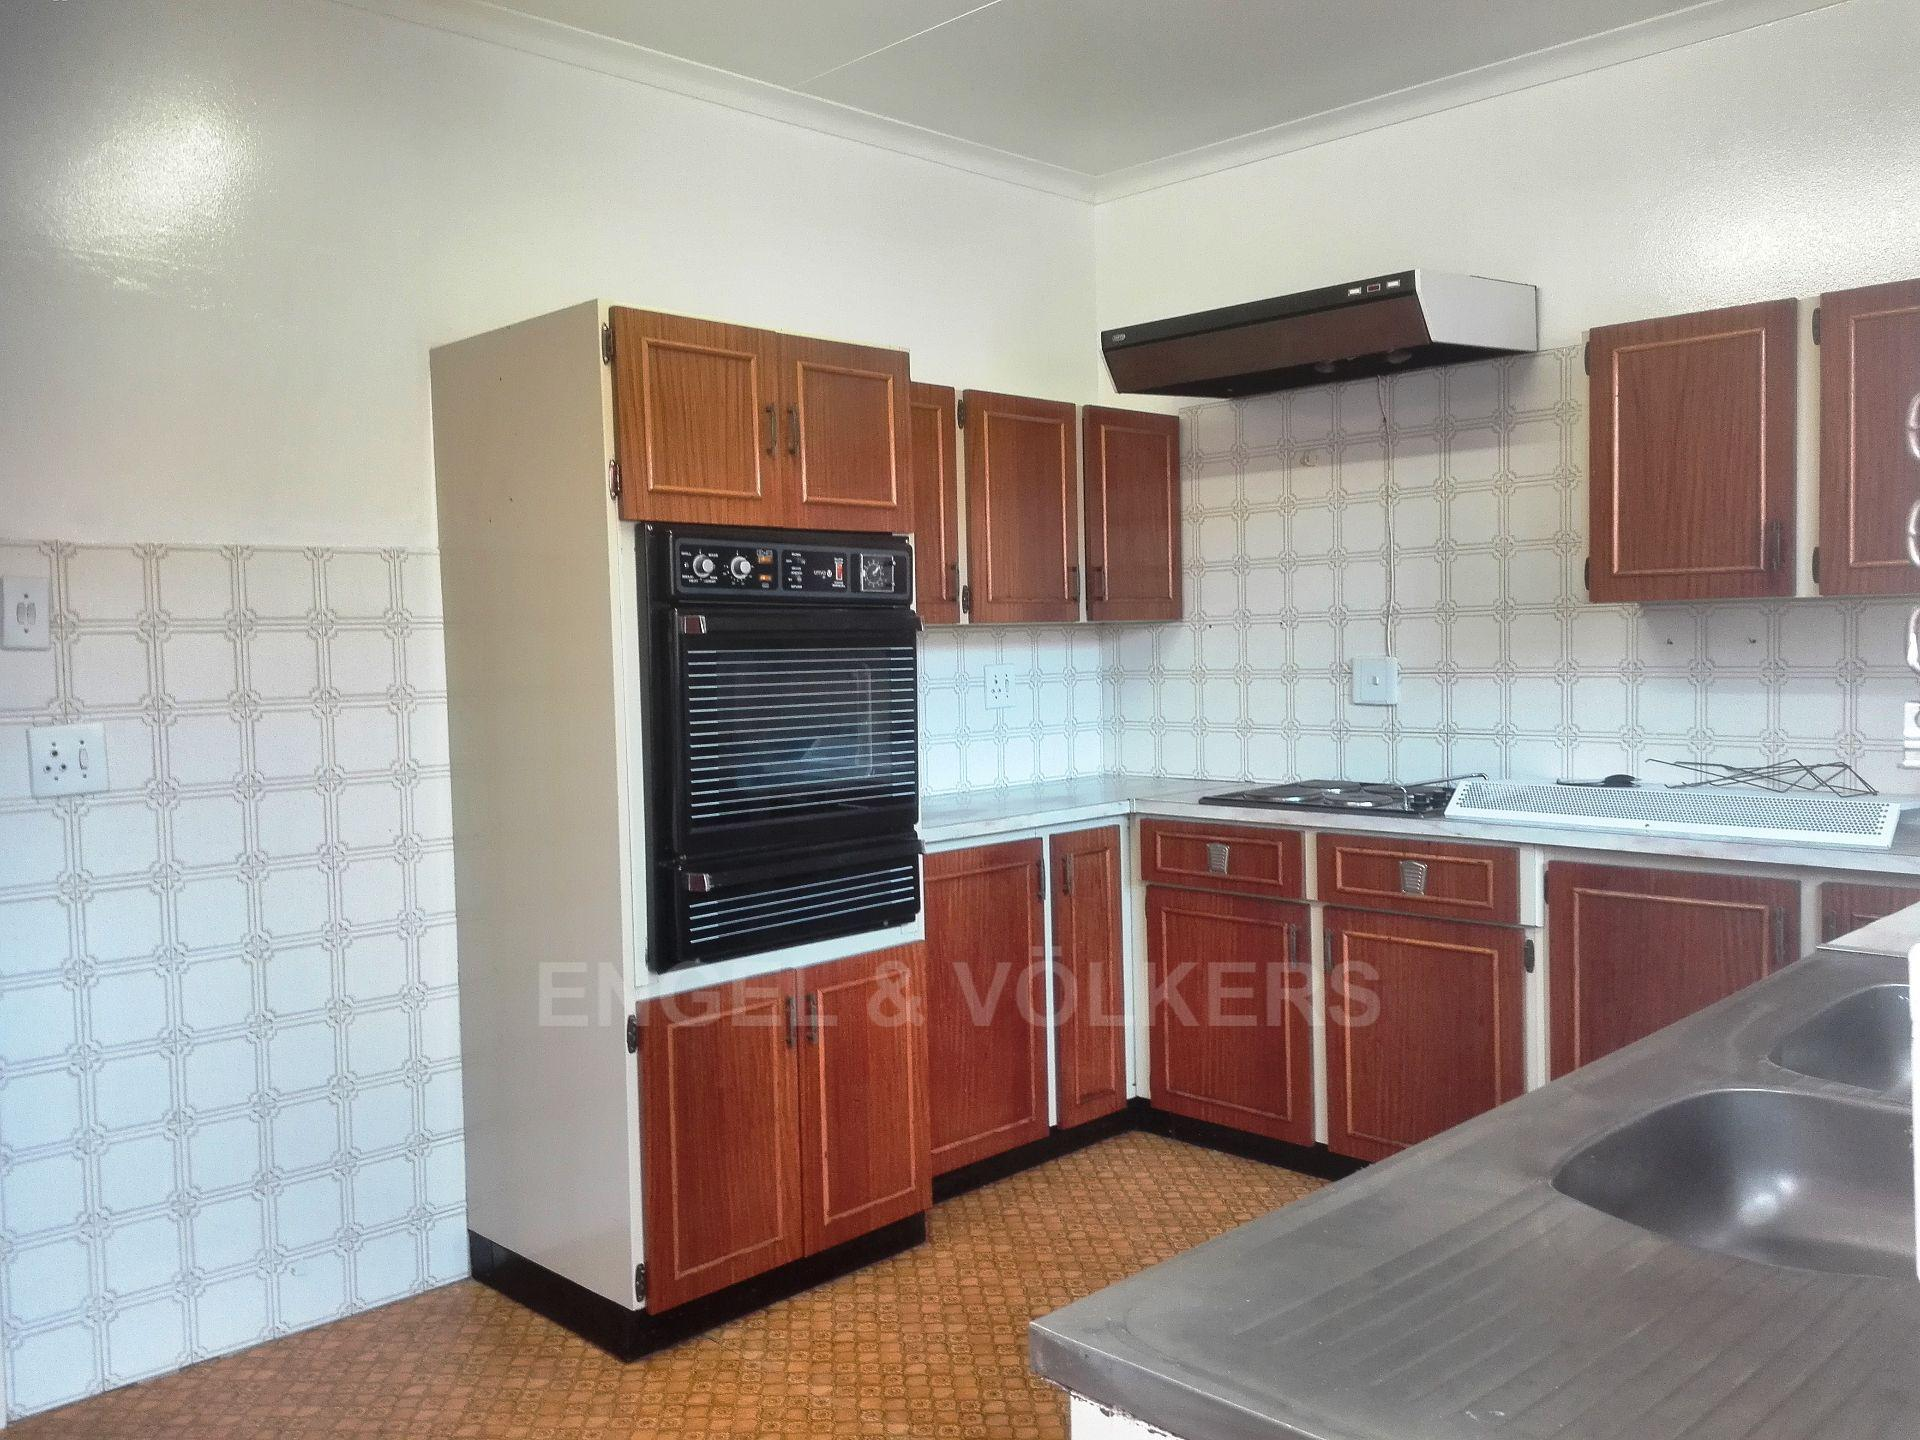 Potchefstroom Central property for sale. Ref No: 13498695. Picture no 5